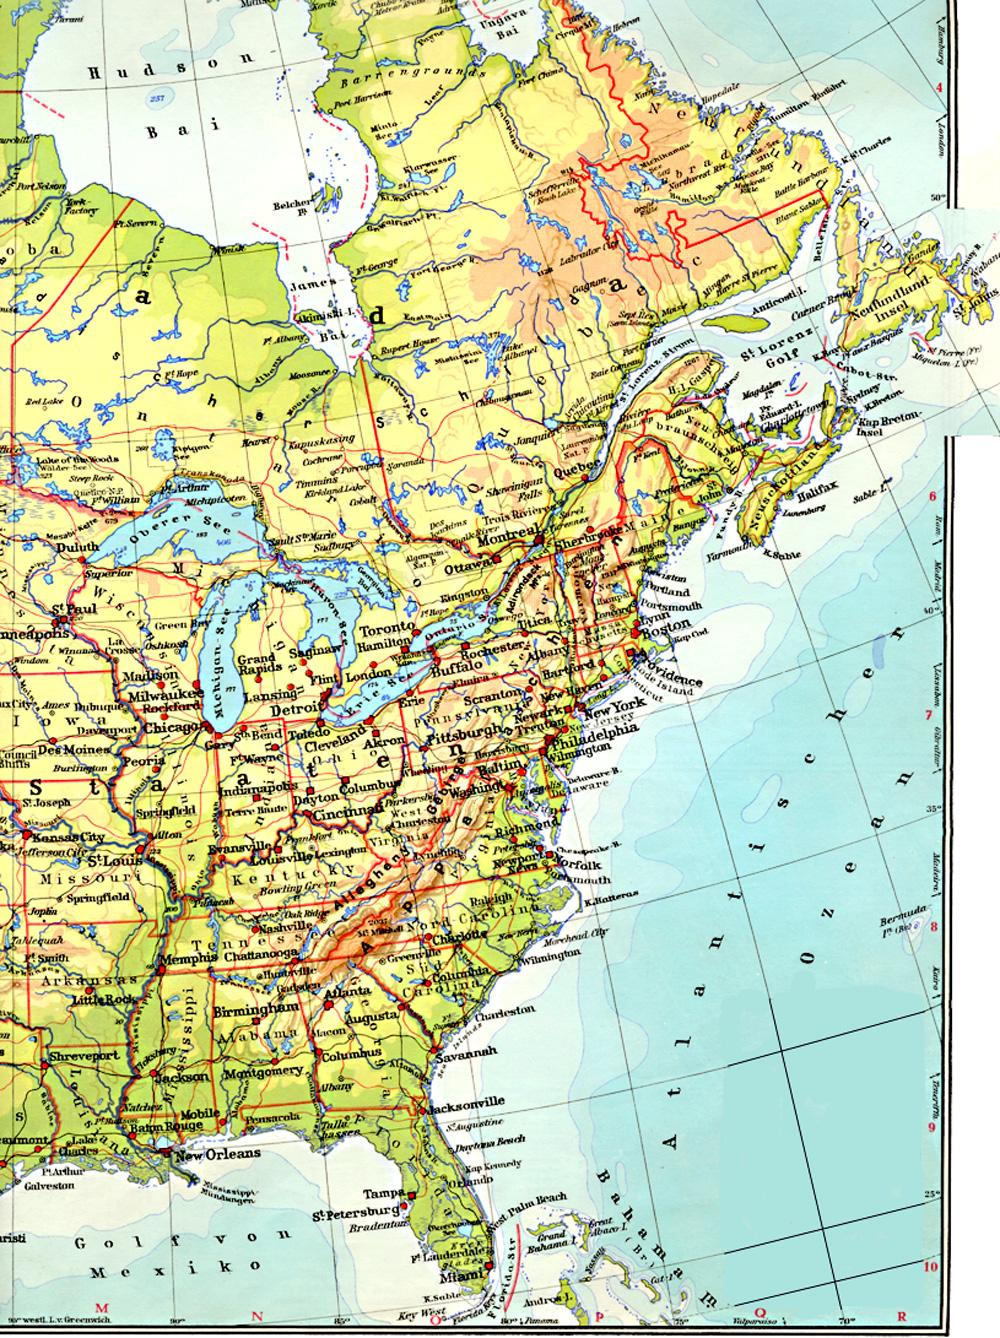 Atlantic Seaboard Watershed Wikipedia World America Centered Free - Physical map of northeast us